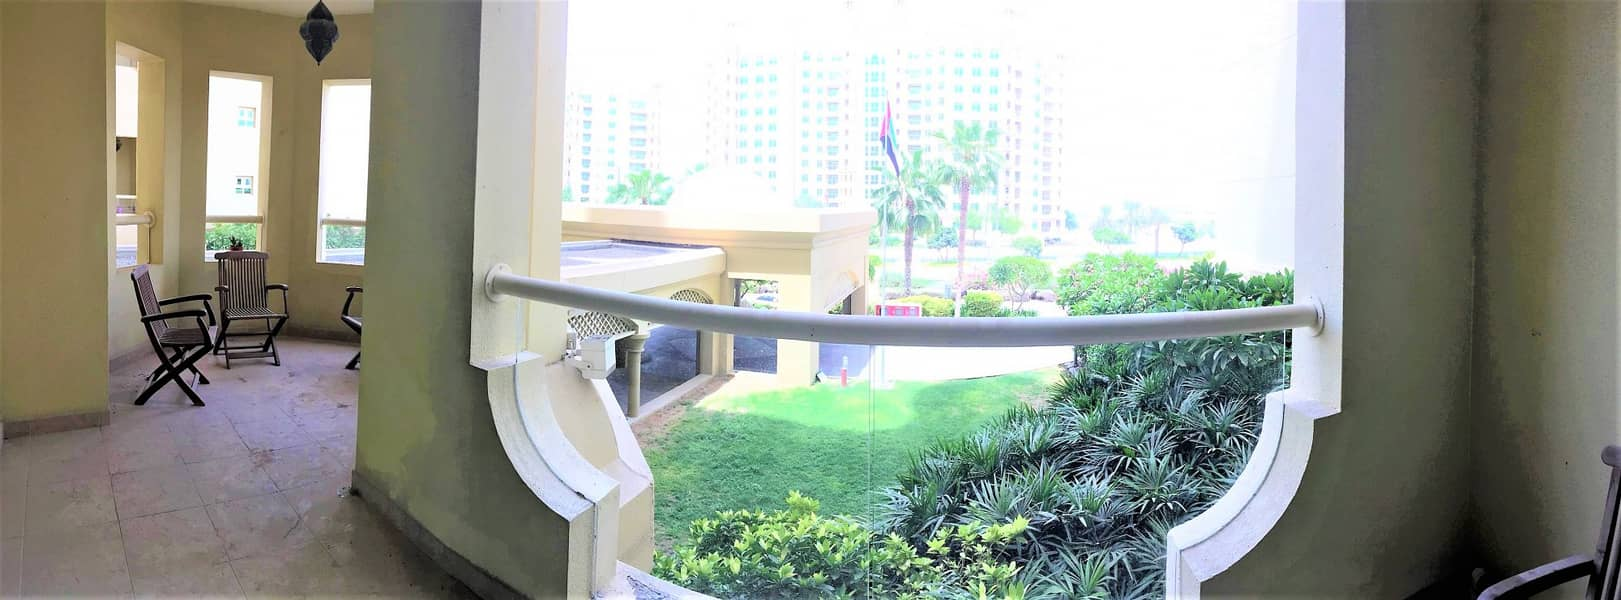 Luxury apartment with a maids room for Rent unfurnished